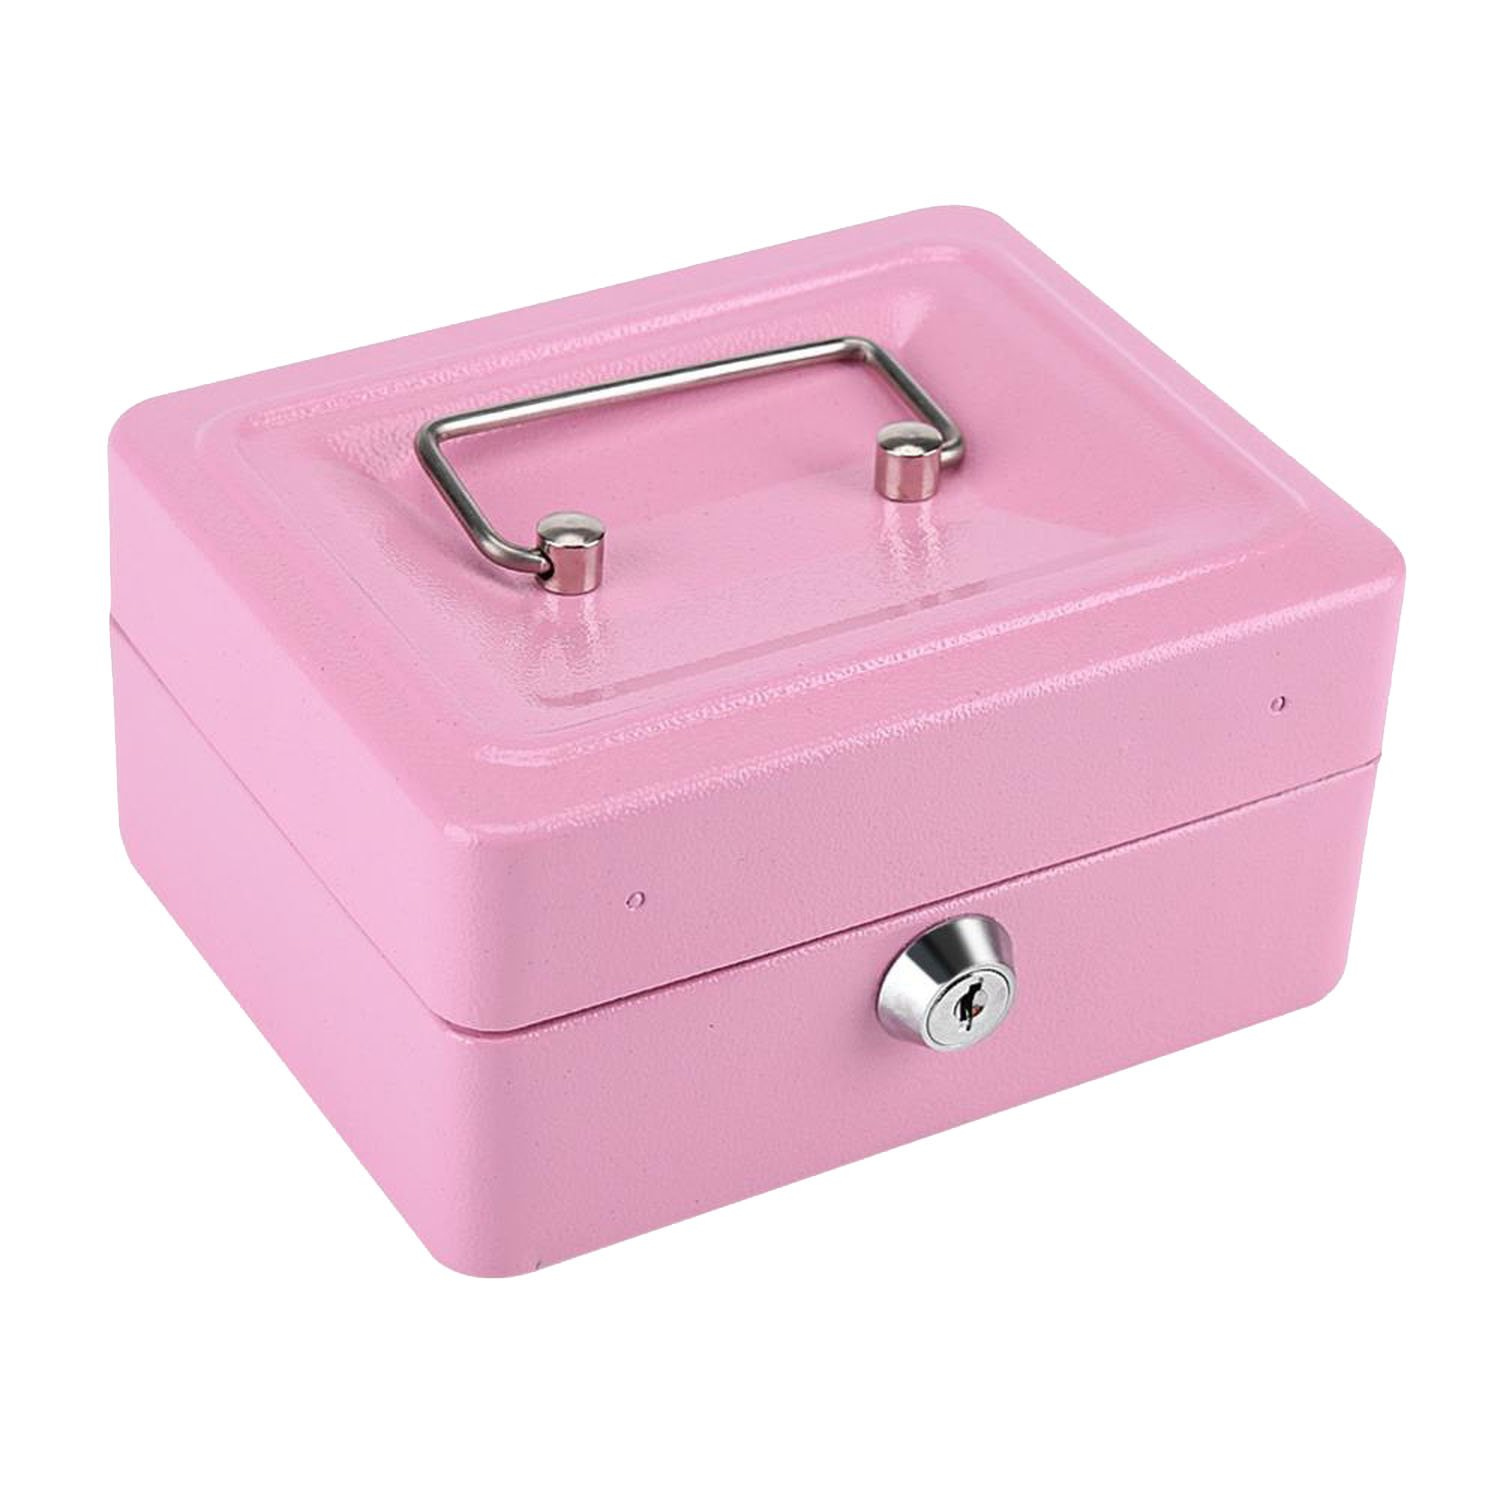 Collocation-Online Metal Jewelry Box Makeup Organizer Storage Box With Key Lock Box Storage Money Coin Holder,Pink